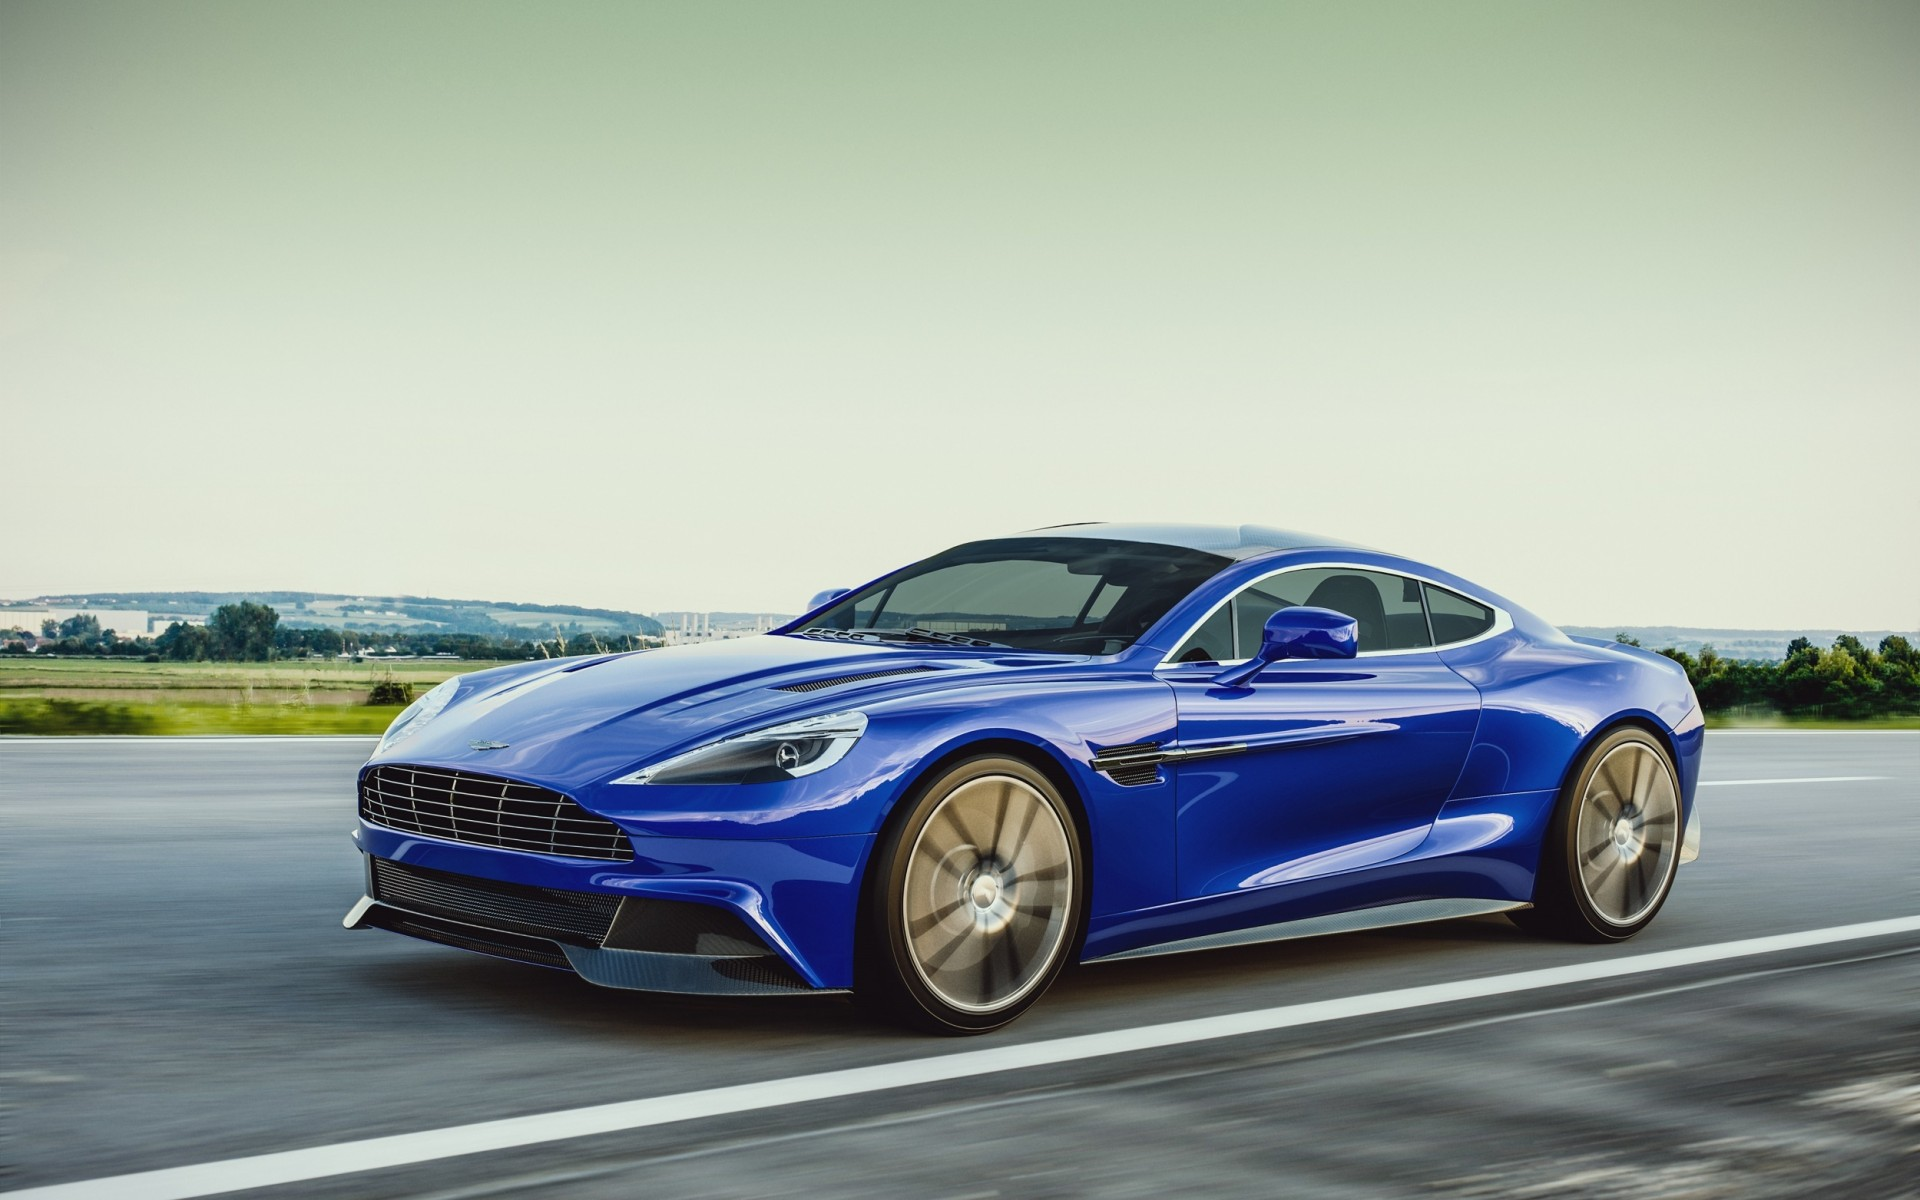 Blue Aston Martin Vanquish On wallpapers | Blue Aston ...Aston Martin Vanquish Blue